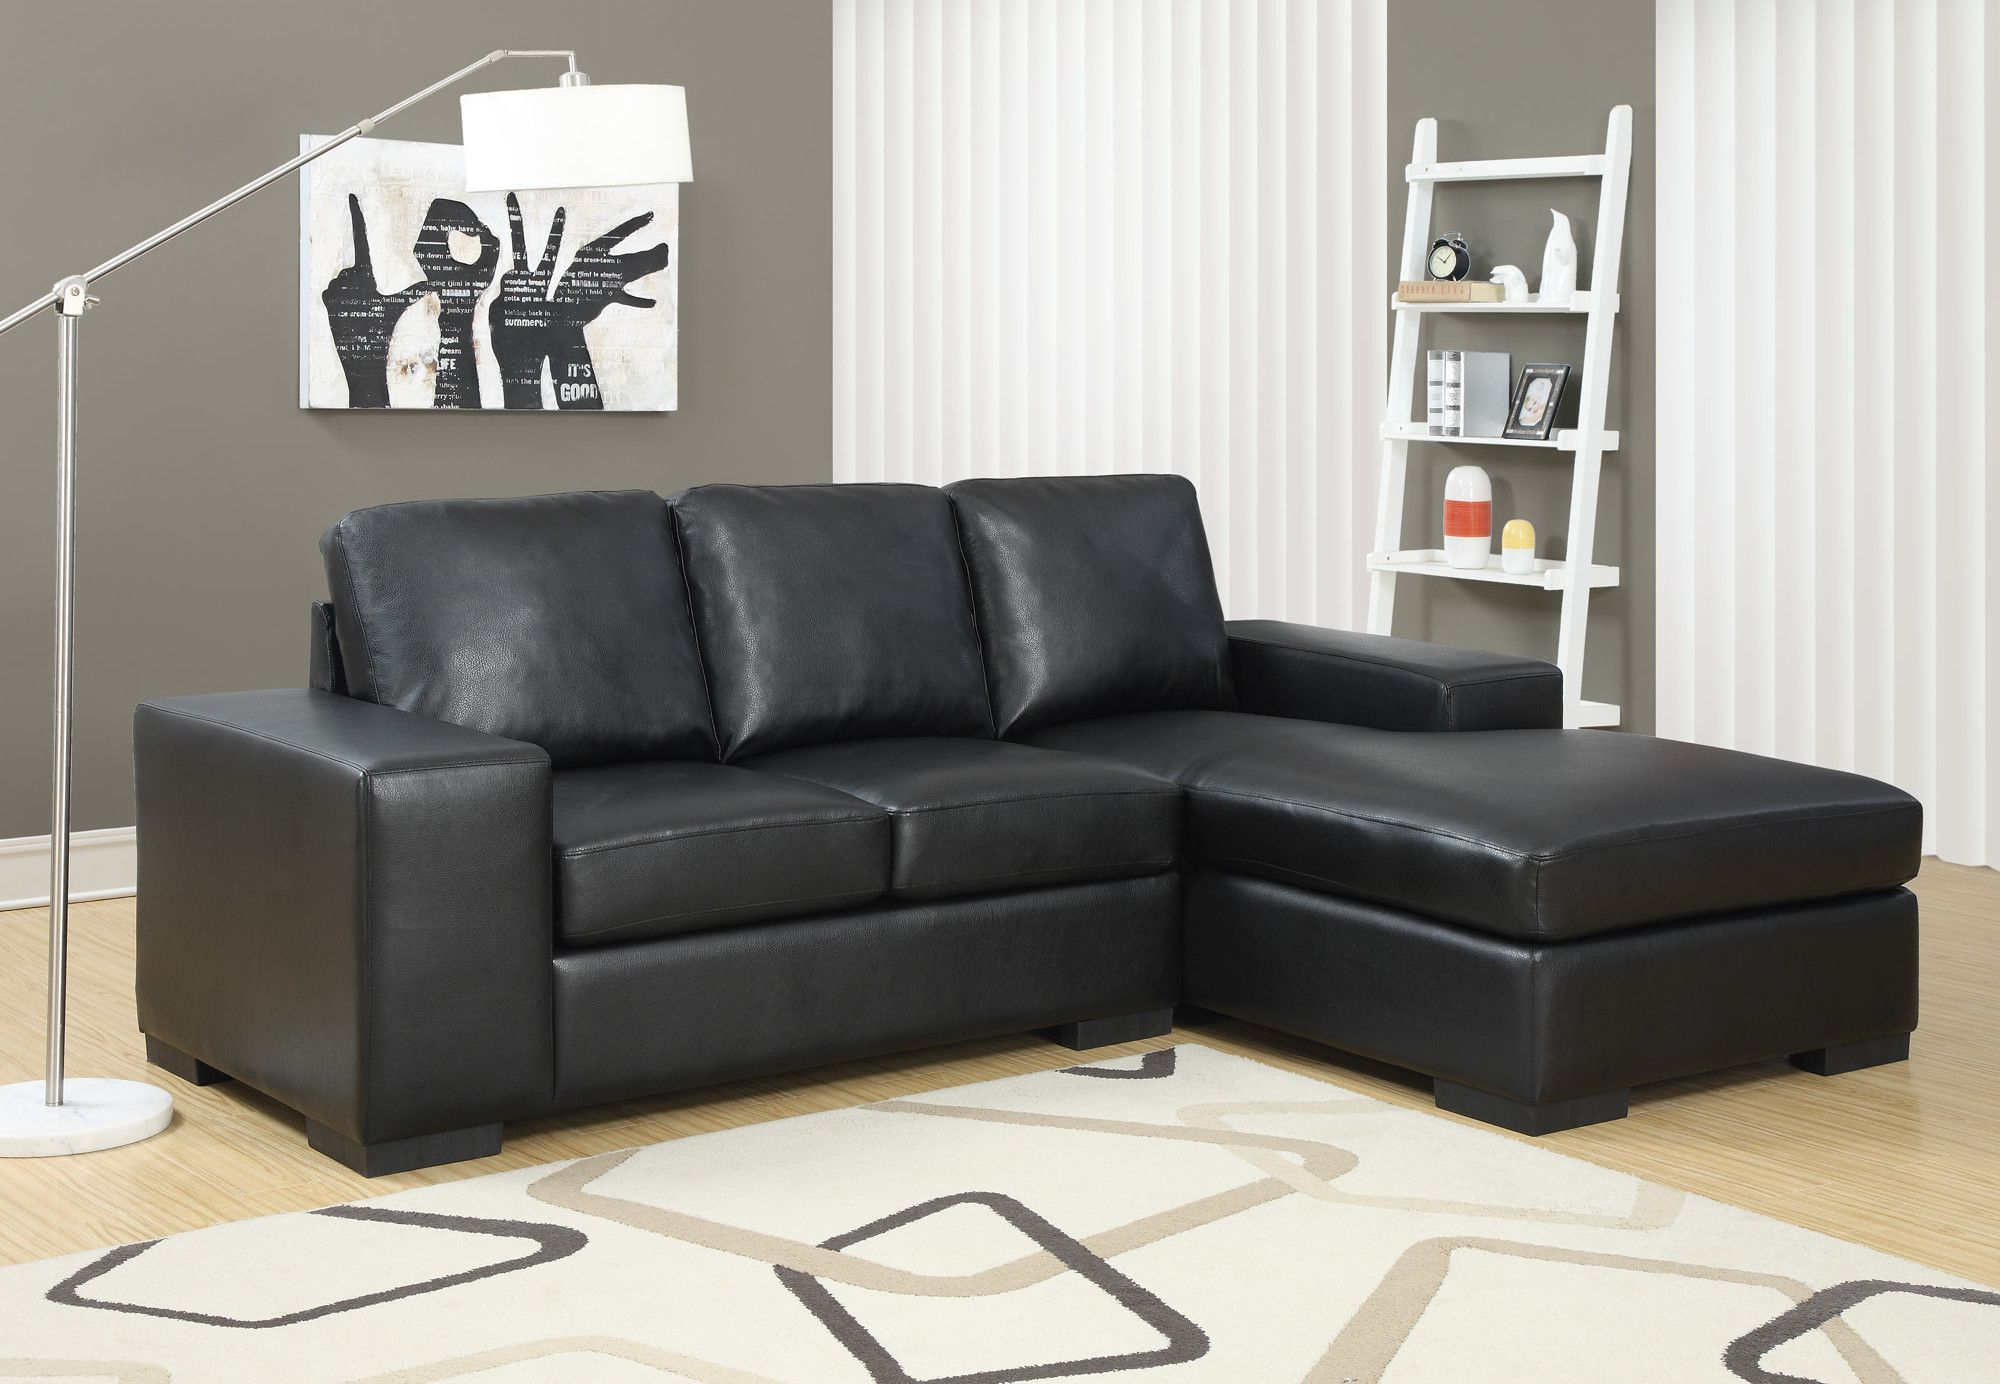 Wayfair – Online Home Store For Furniture, Decor, Outdoors In Gina Grey Leather Sofa Chairs (View 9 of 20)